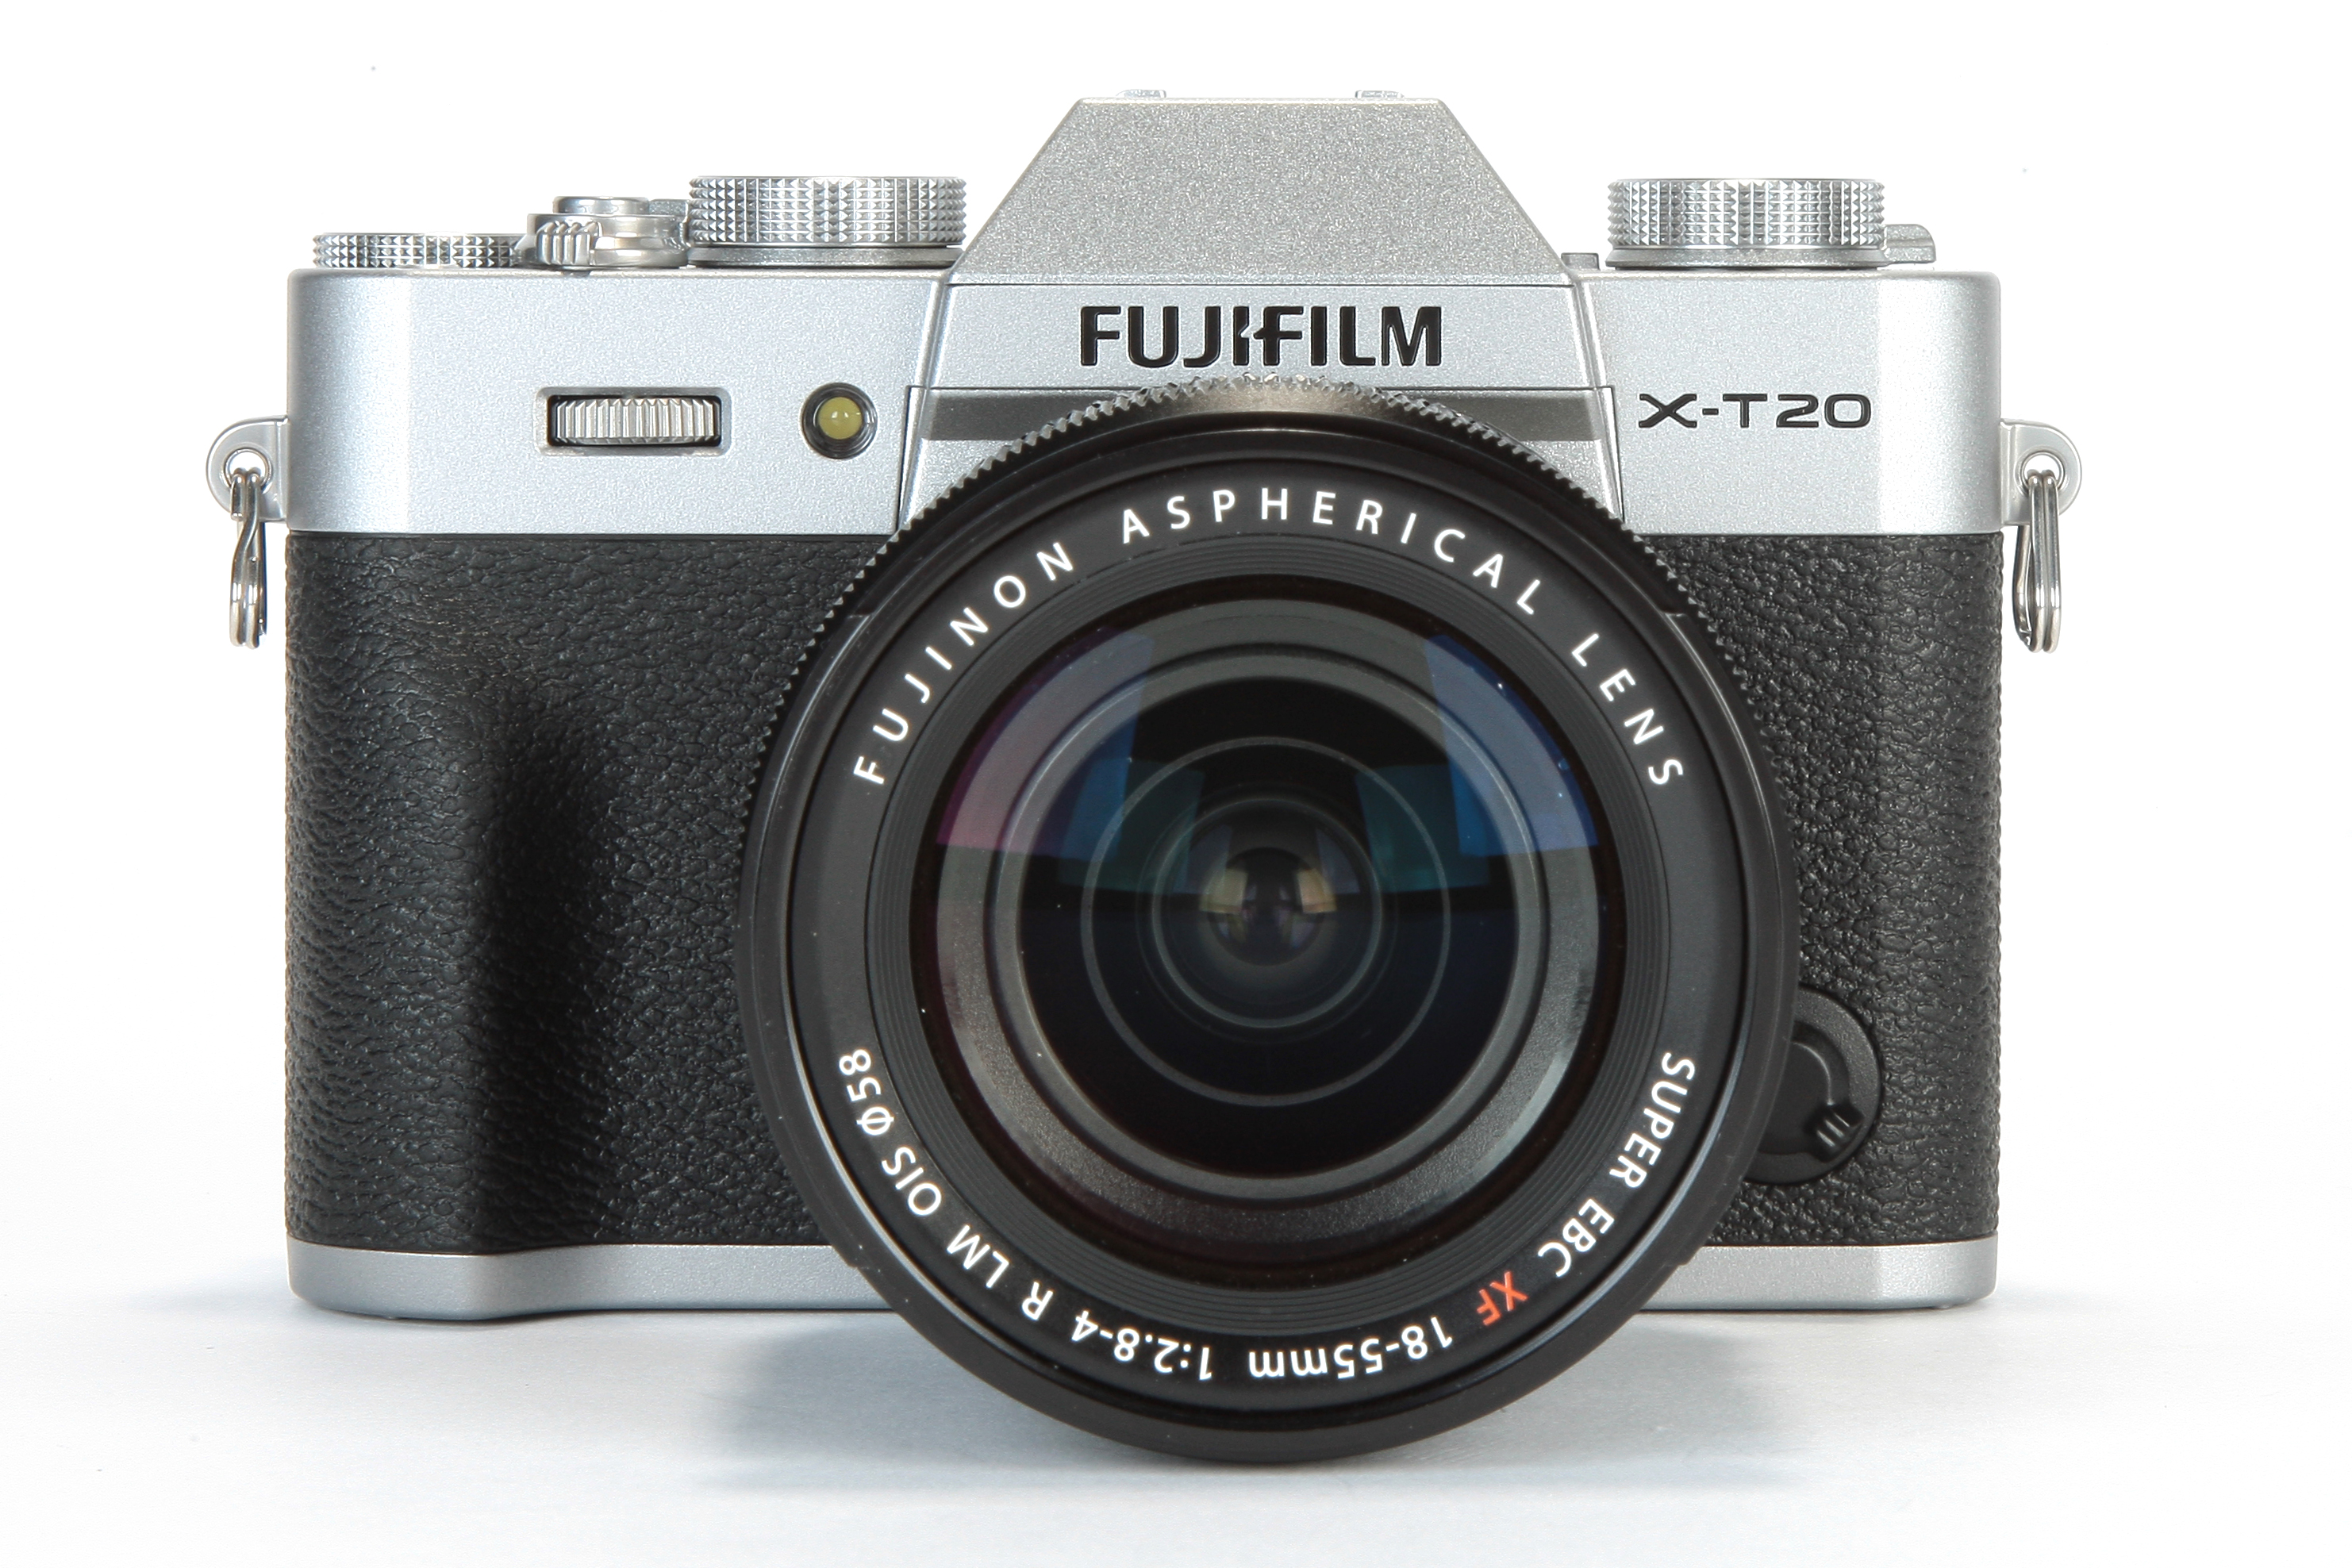 latest firmware for fuji 18-55 lens